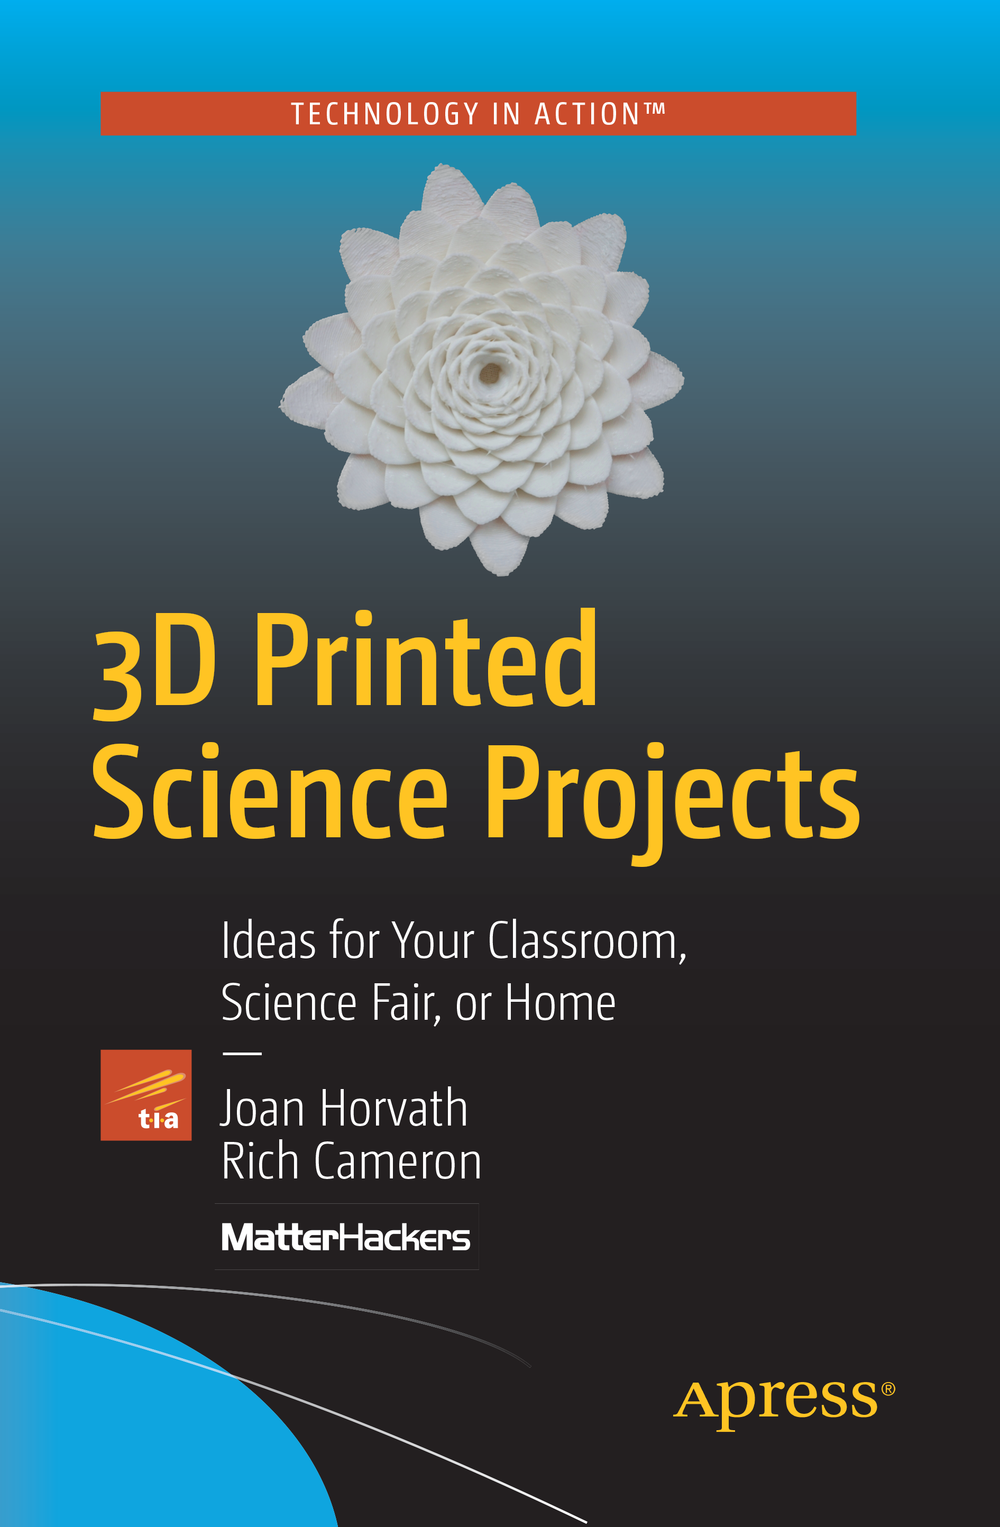 3D Printed Science Projects (Apress, 2016)